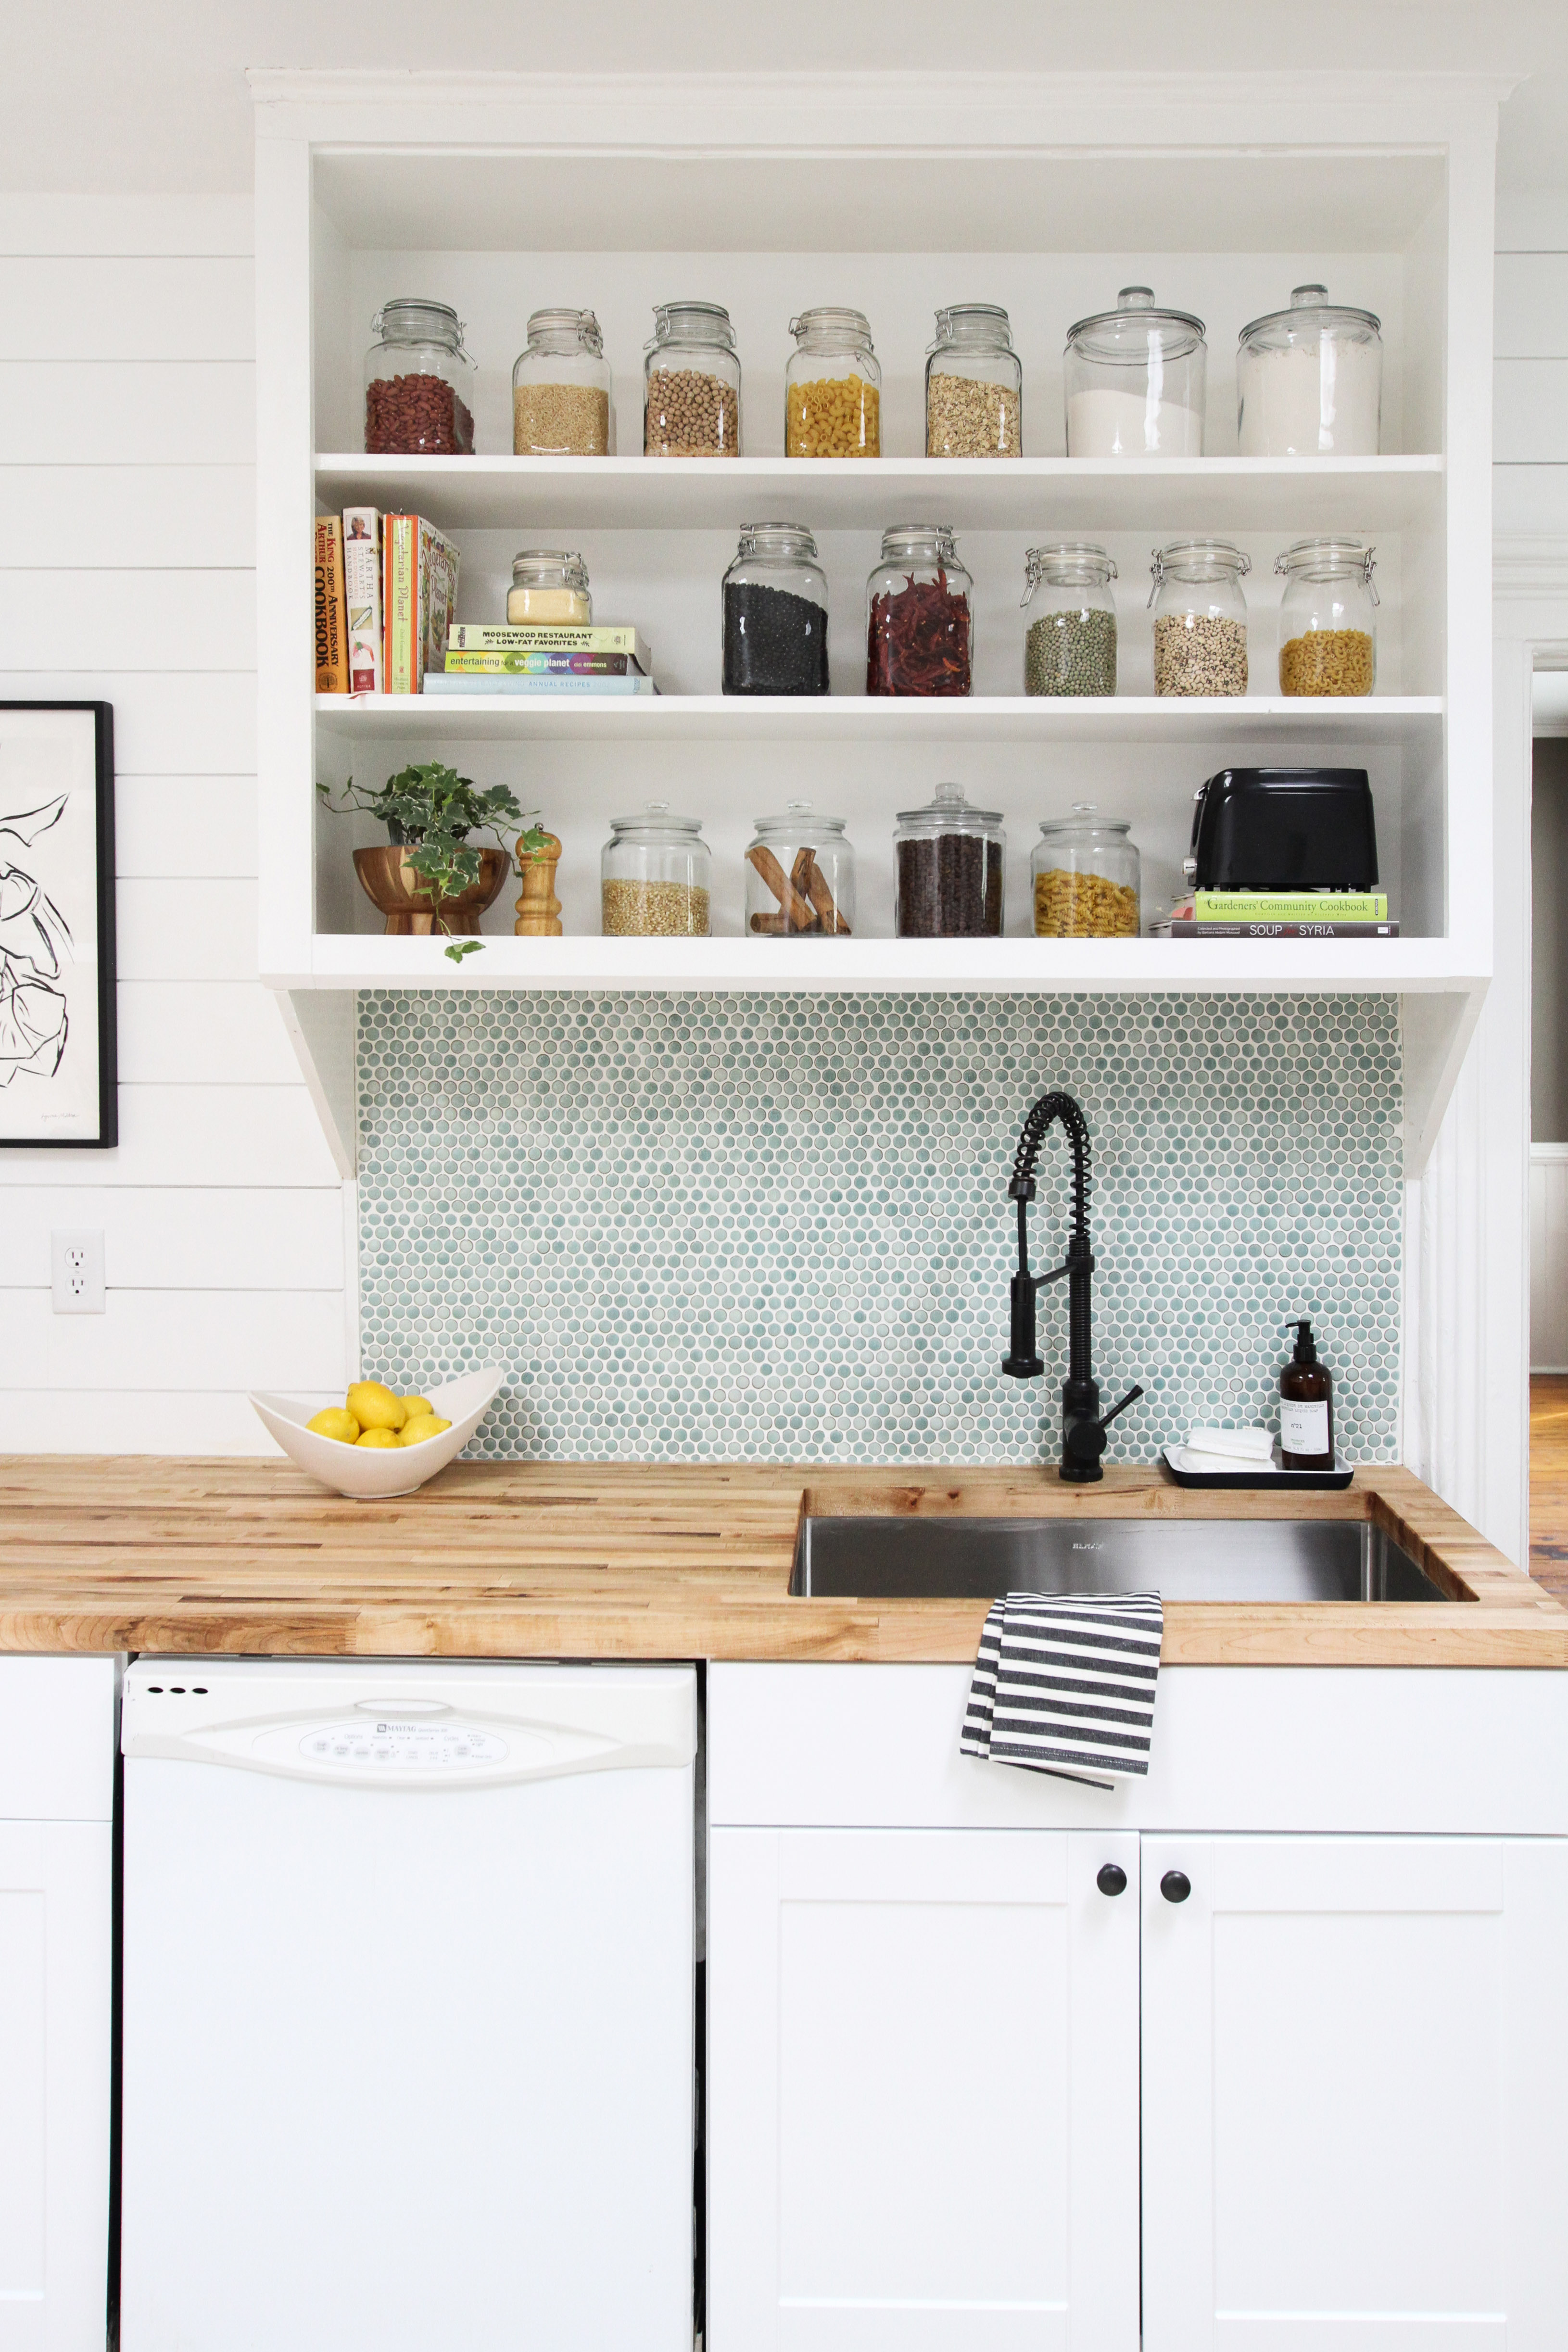 How to Grout Tile Backsplash | Apartment Therapy